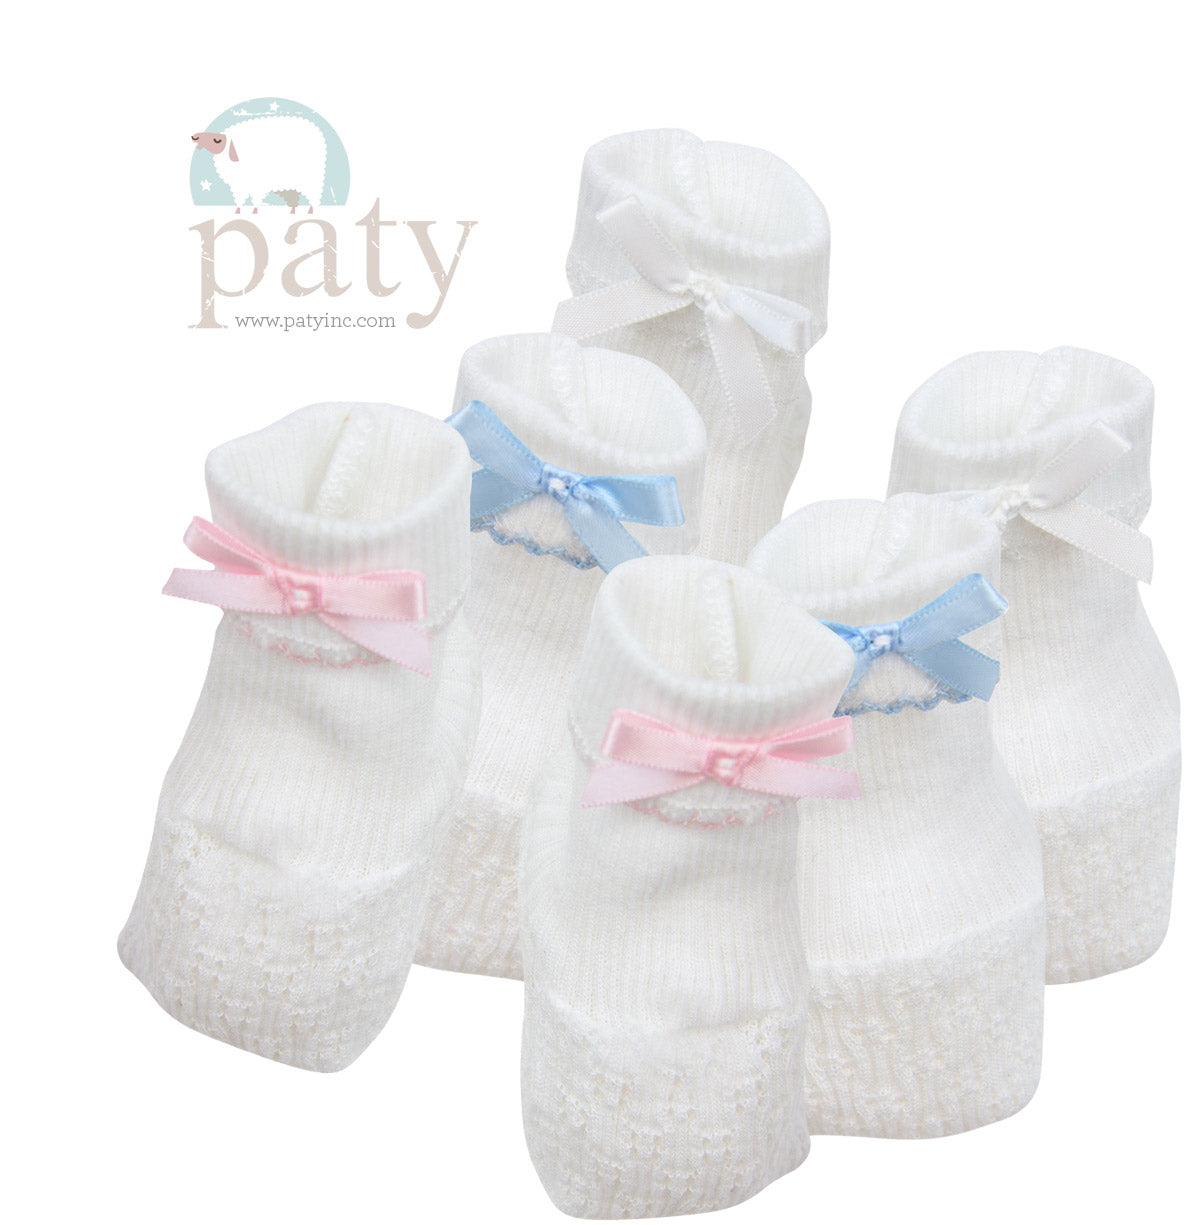 Paty|Booties with White Bow Accent